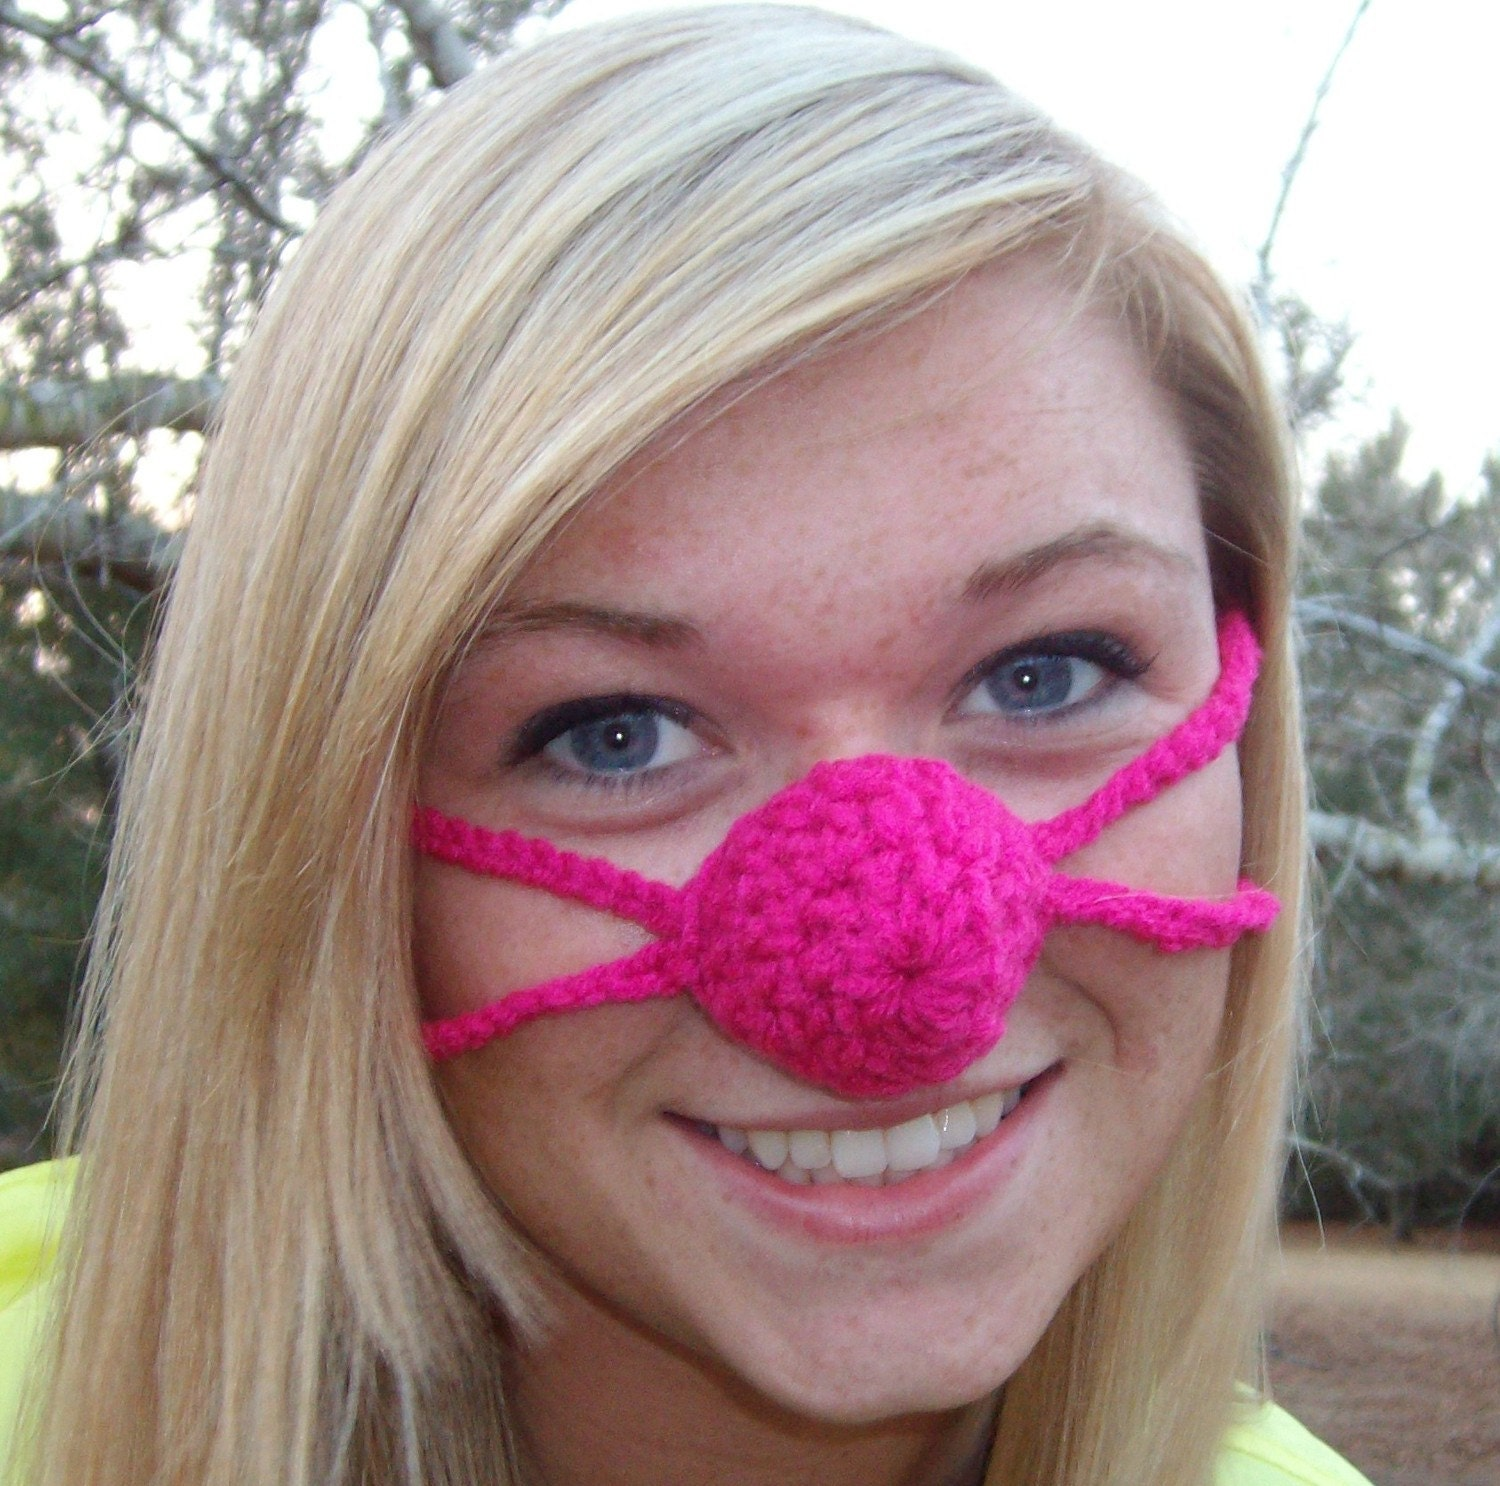 Crochet Nose Warmer : ... Nose, Nose Warmer, Teen, Tween, Woman, Nose Cozy, Crocheted, Cold Nose